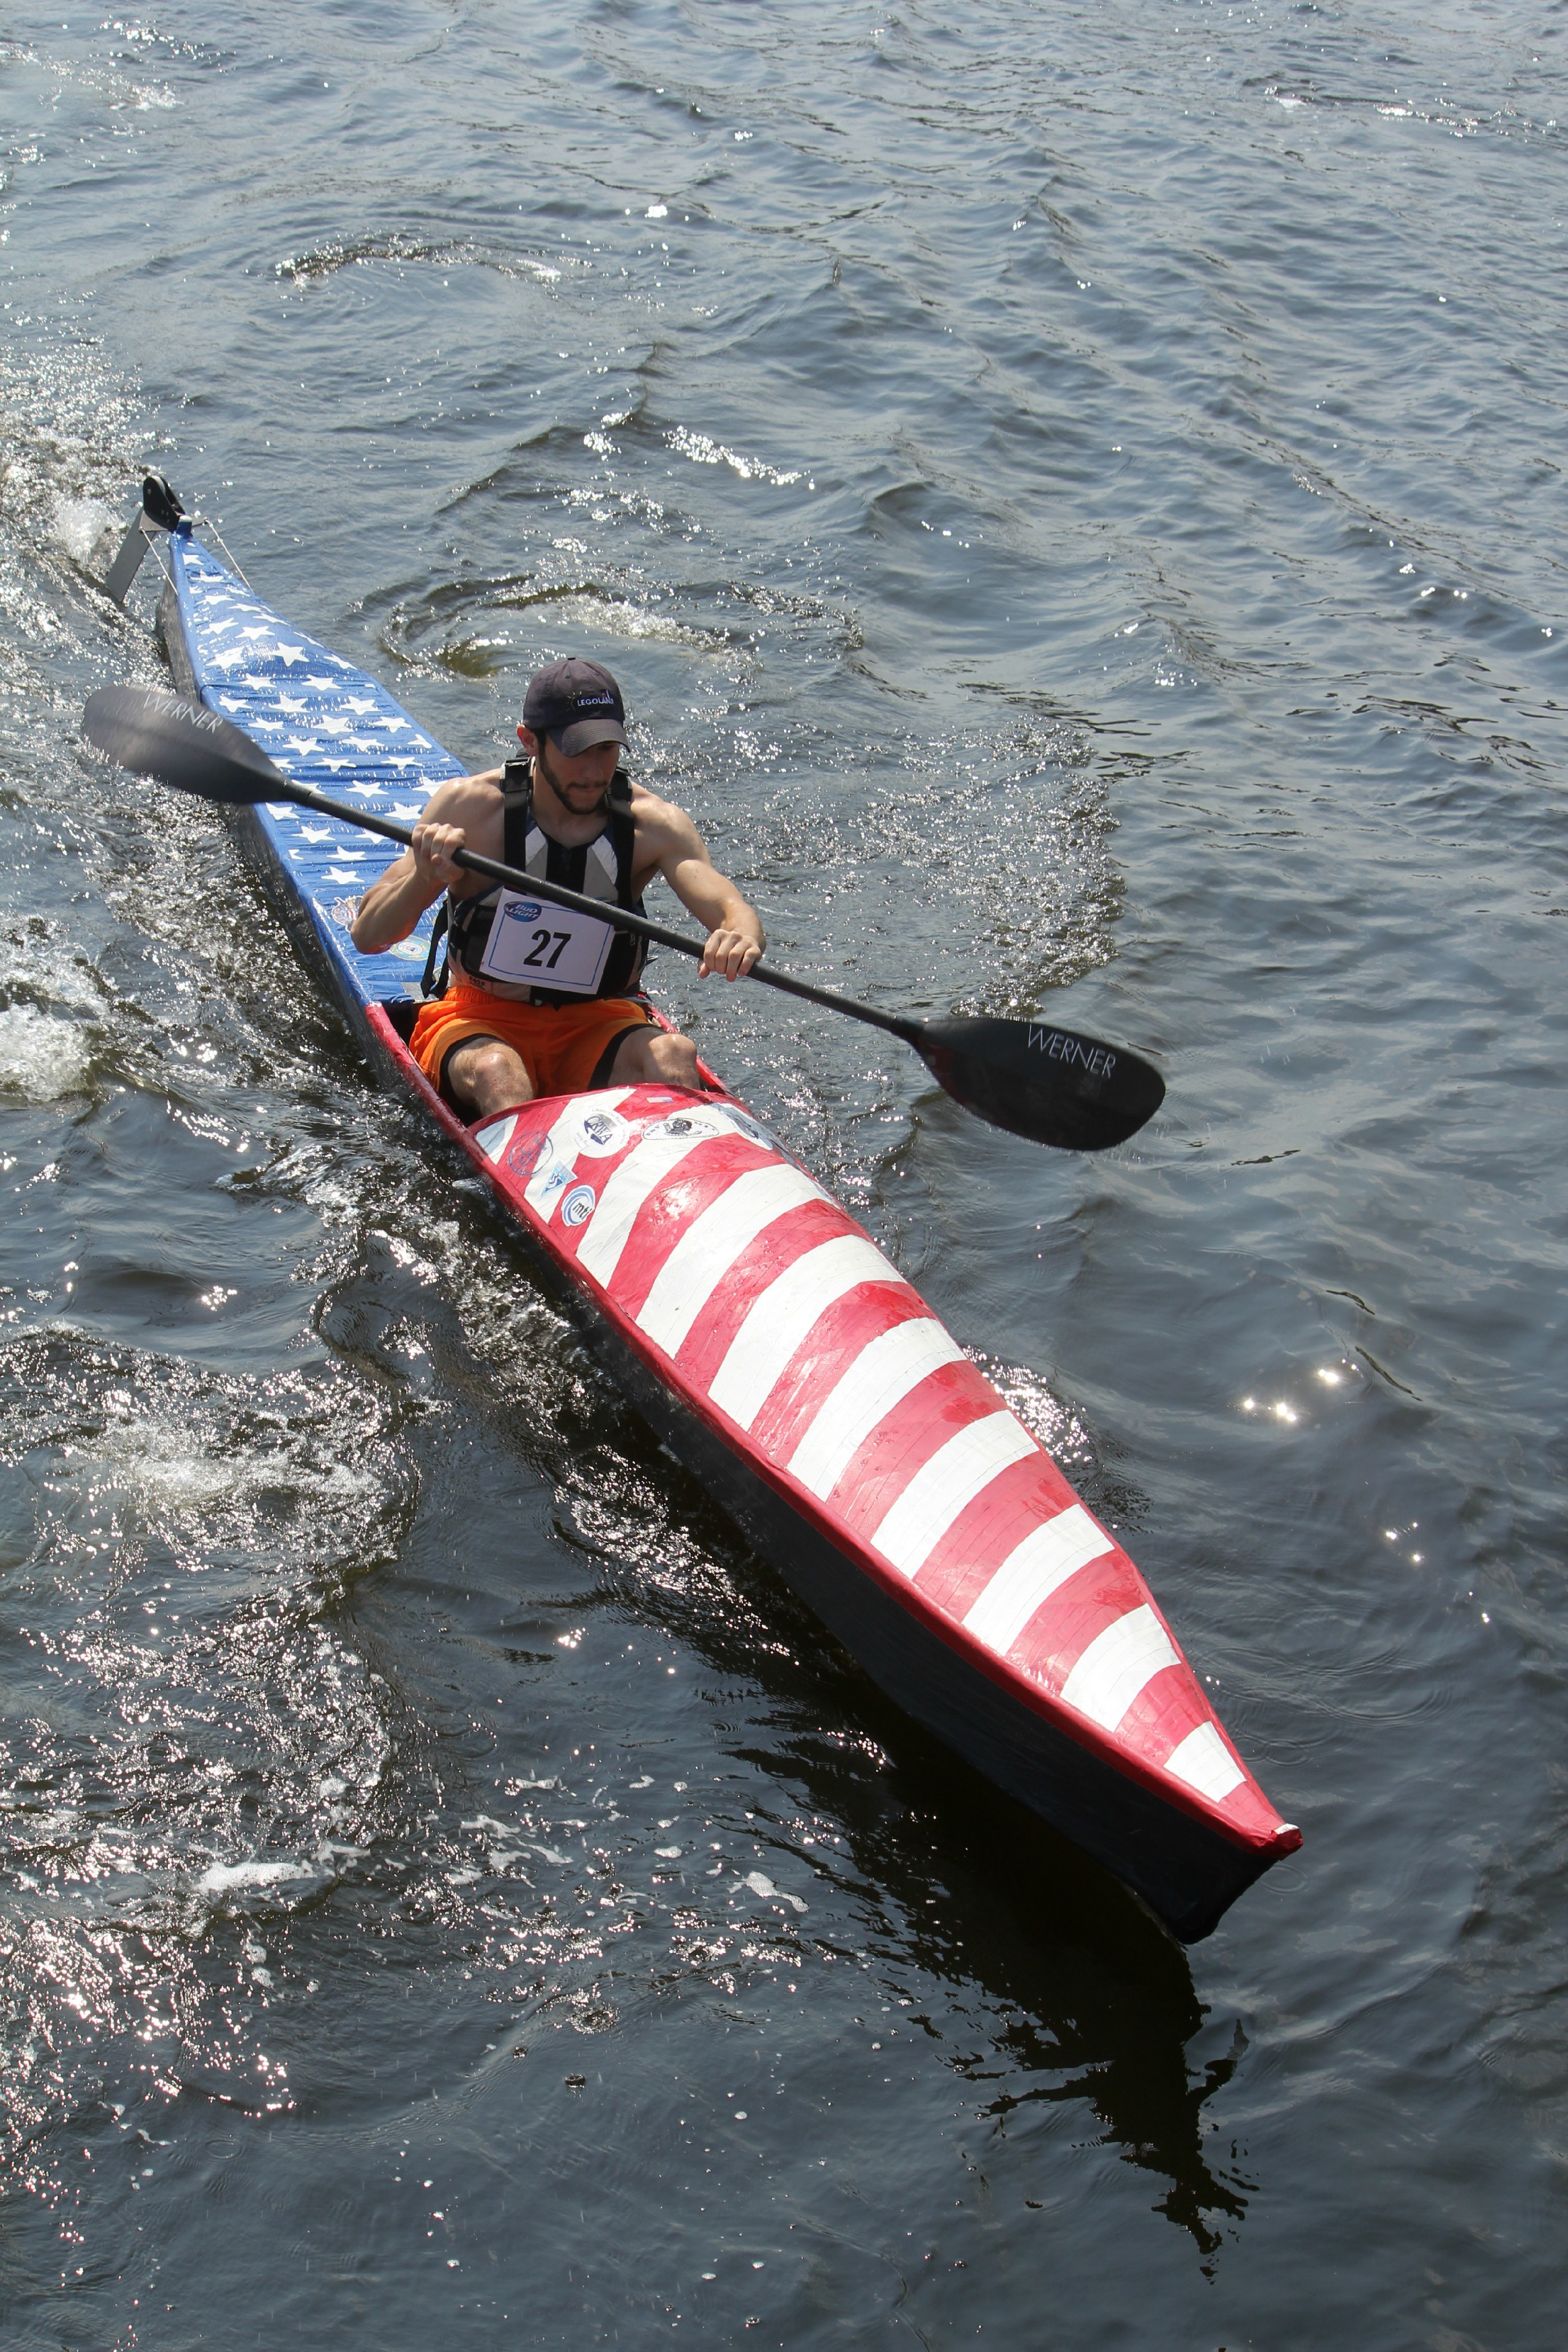 We Are So Pleased That Alex Russo Will Be Exhibiting His Duct Tape Kayak At The Cape Cod Mini Maker Faire Inspired By An Episode Of TV Show Mythbusters